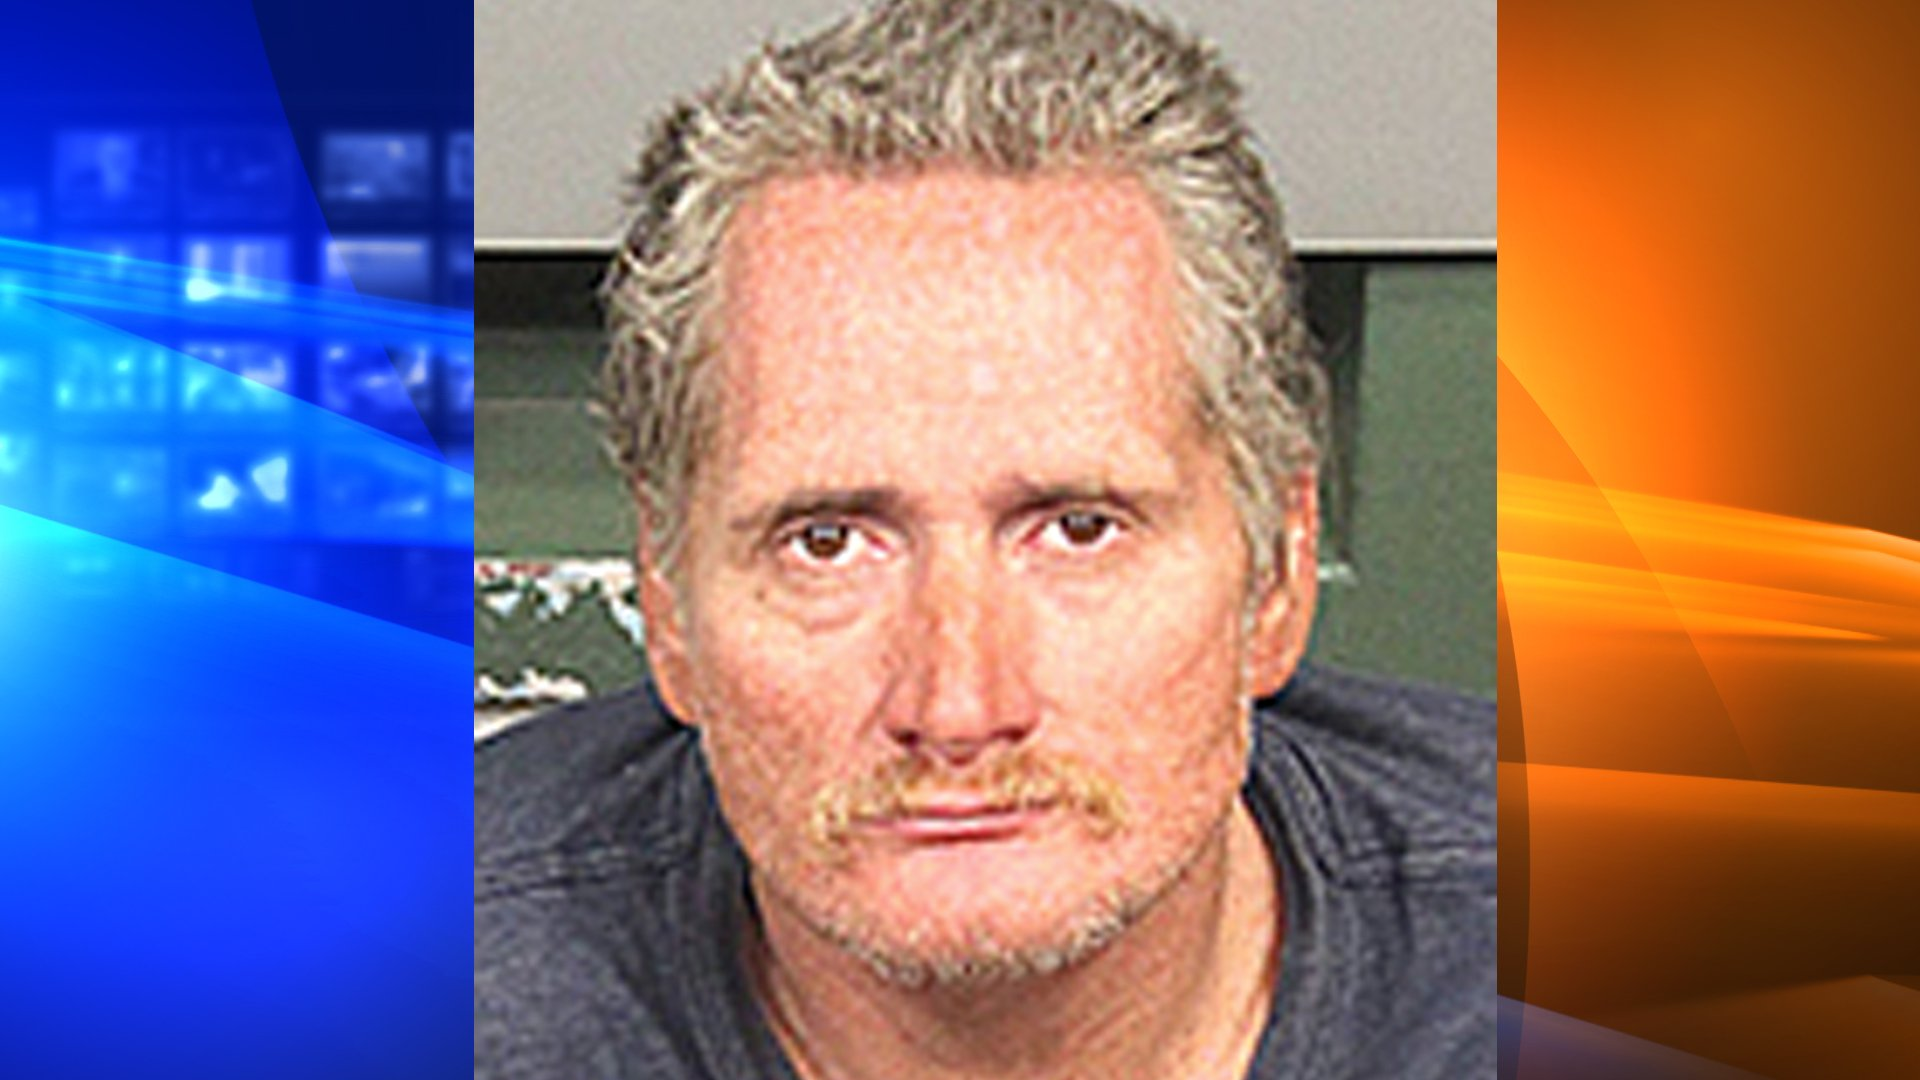 Julio Hoyas is seen in a booking photo provided by the Riverside County Sheriff's Department.